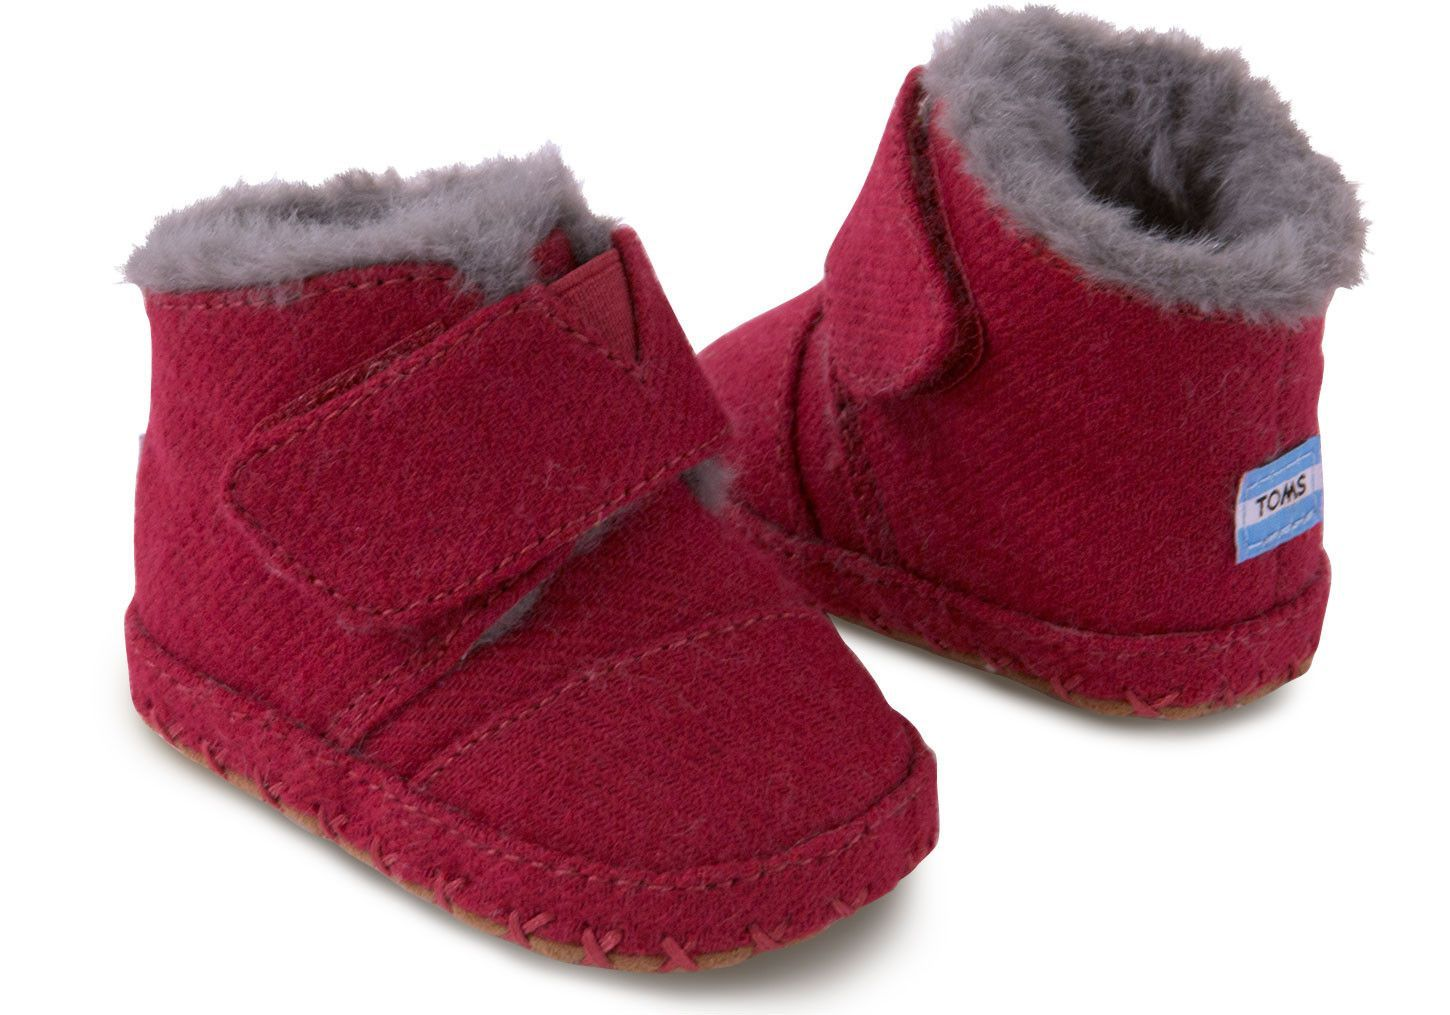 c55f2cffb9a TOMS Tiny Cuna Shoe- 2 Colors. Keep little feet warm and cozy in these  soft